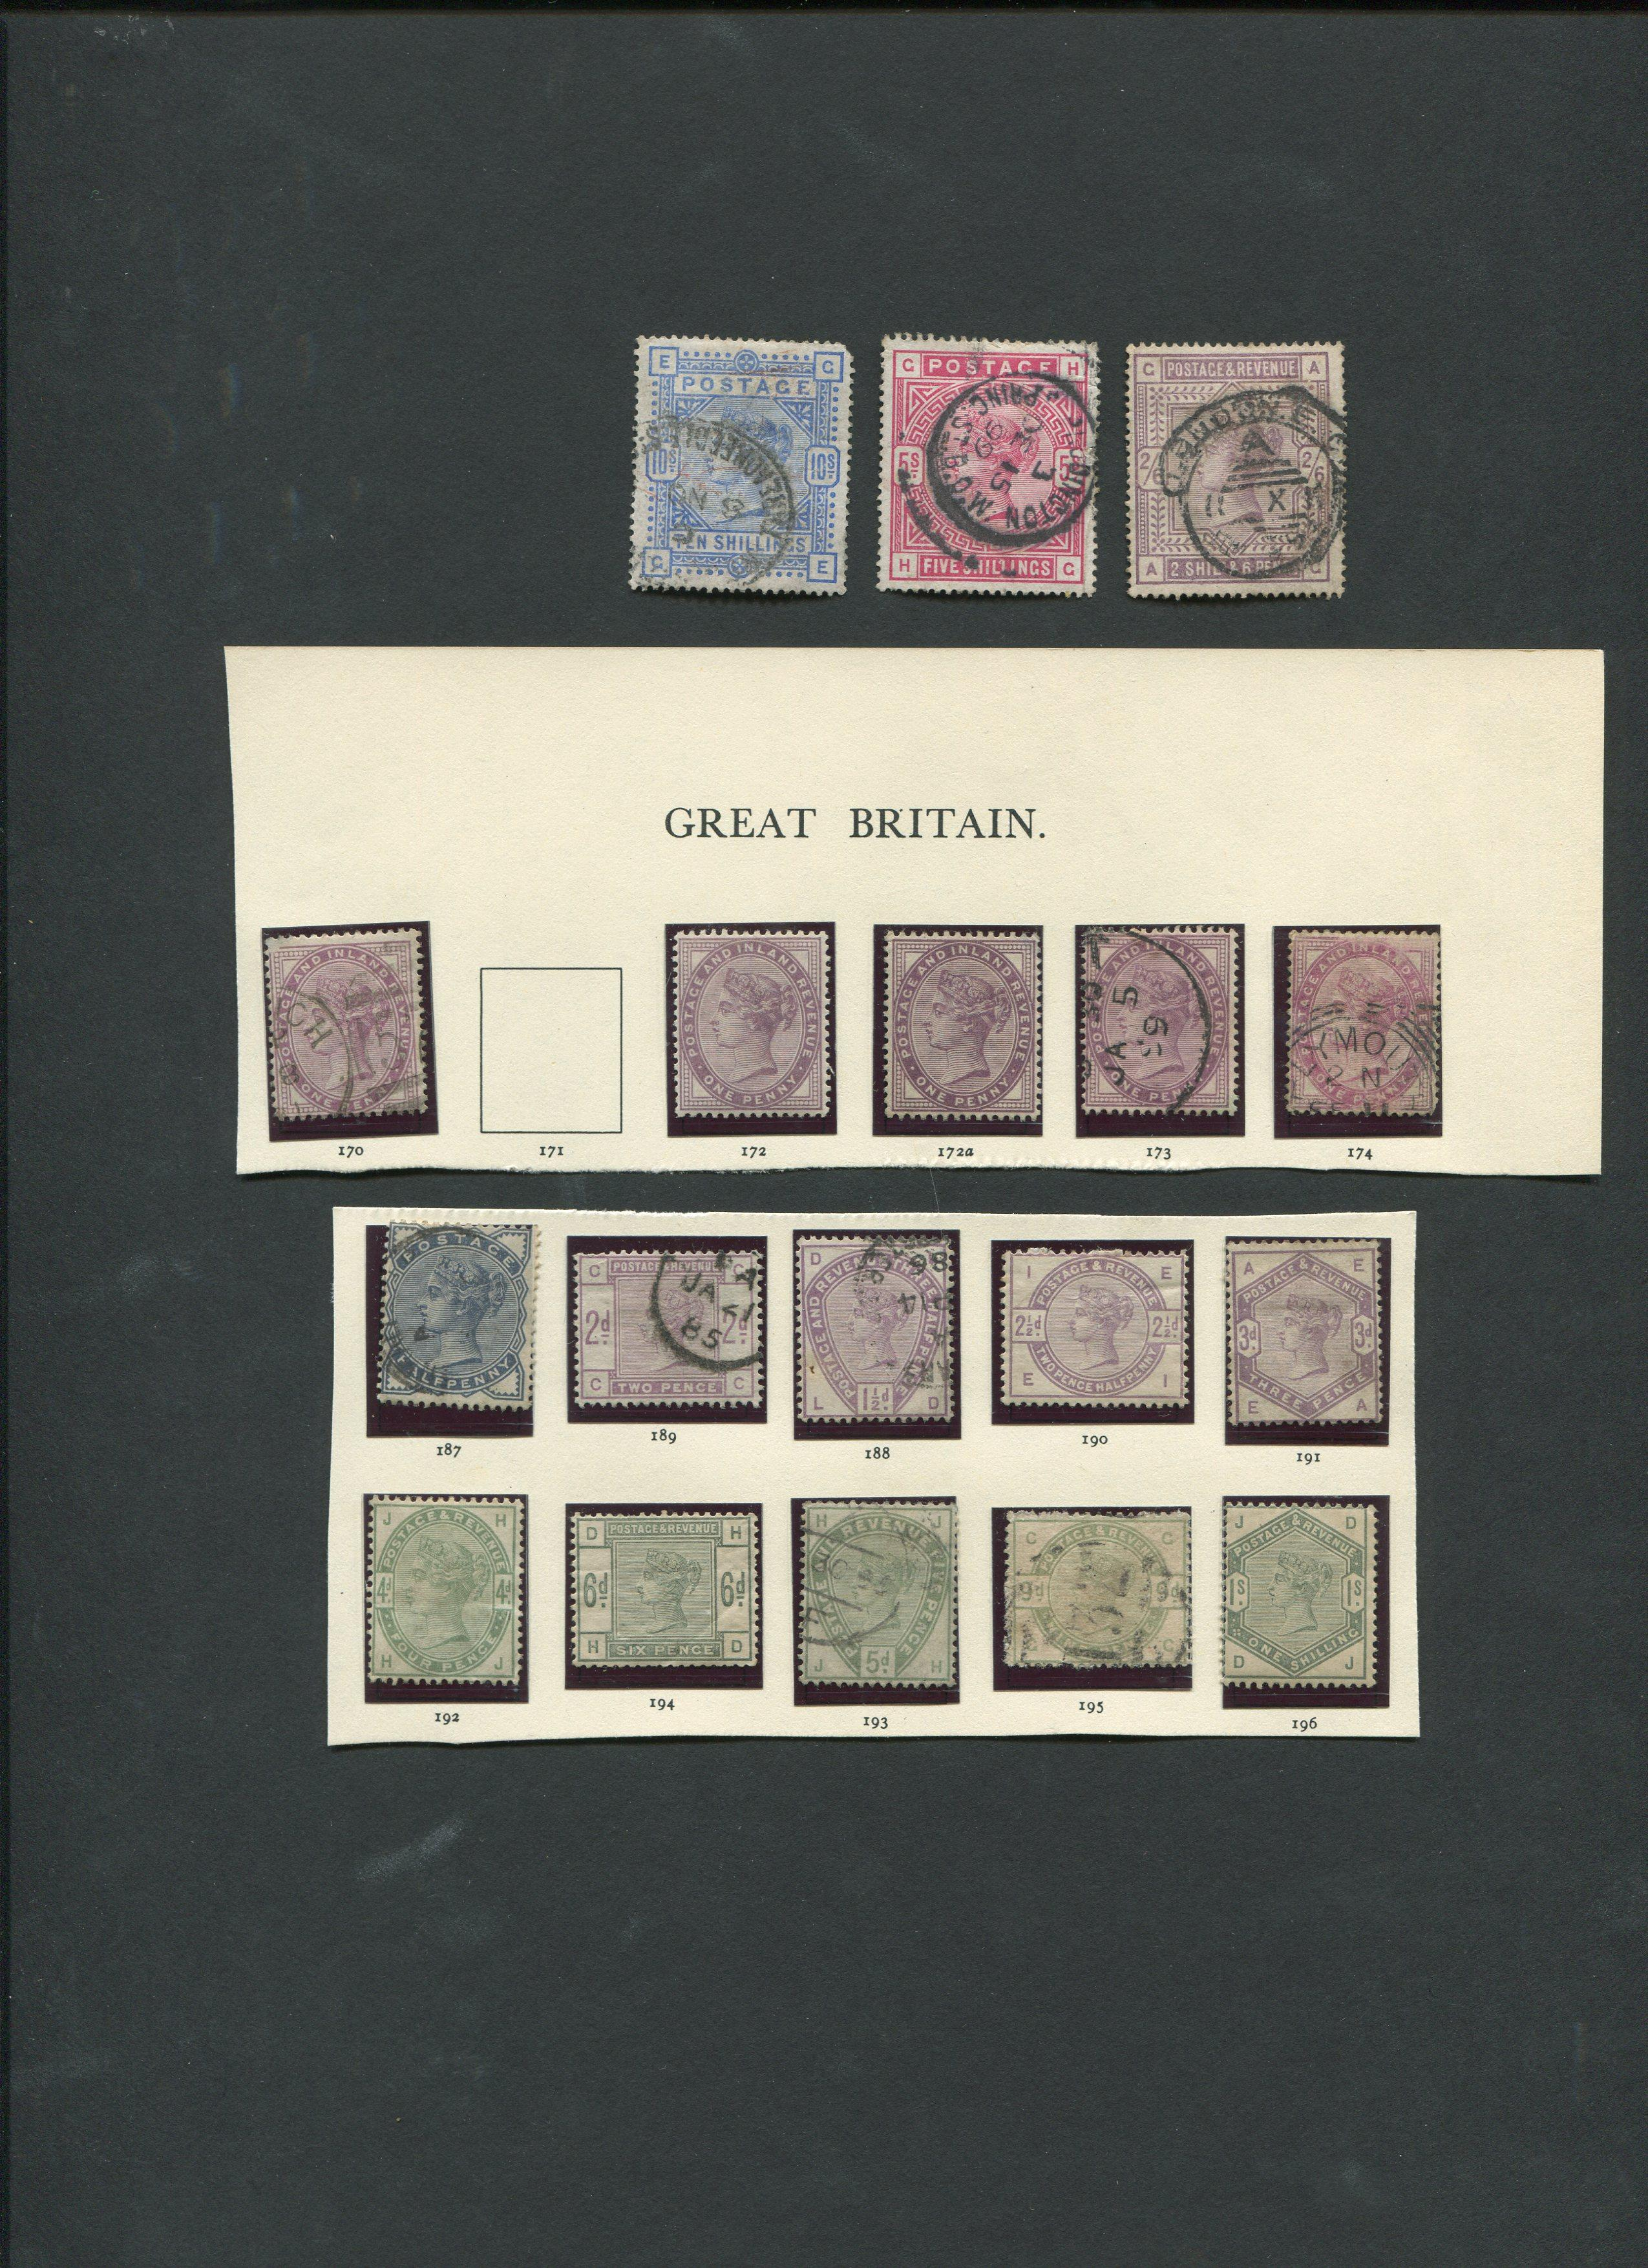 Great Britain 1881-84 Stamp Collection